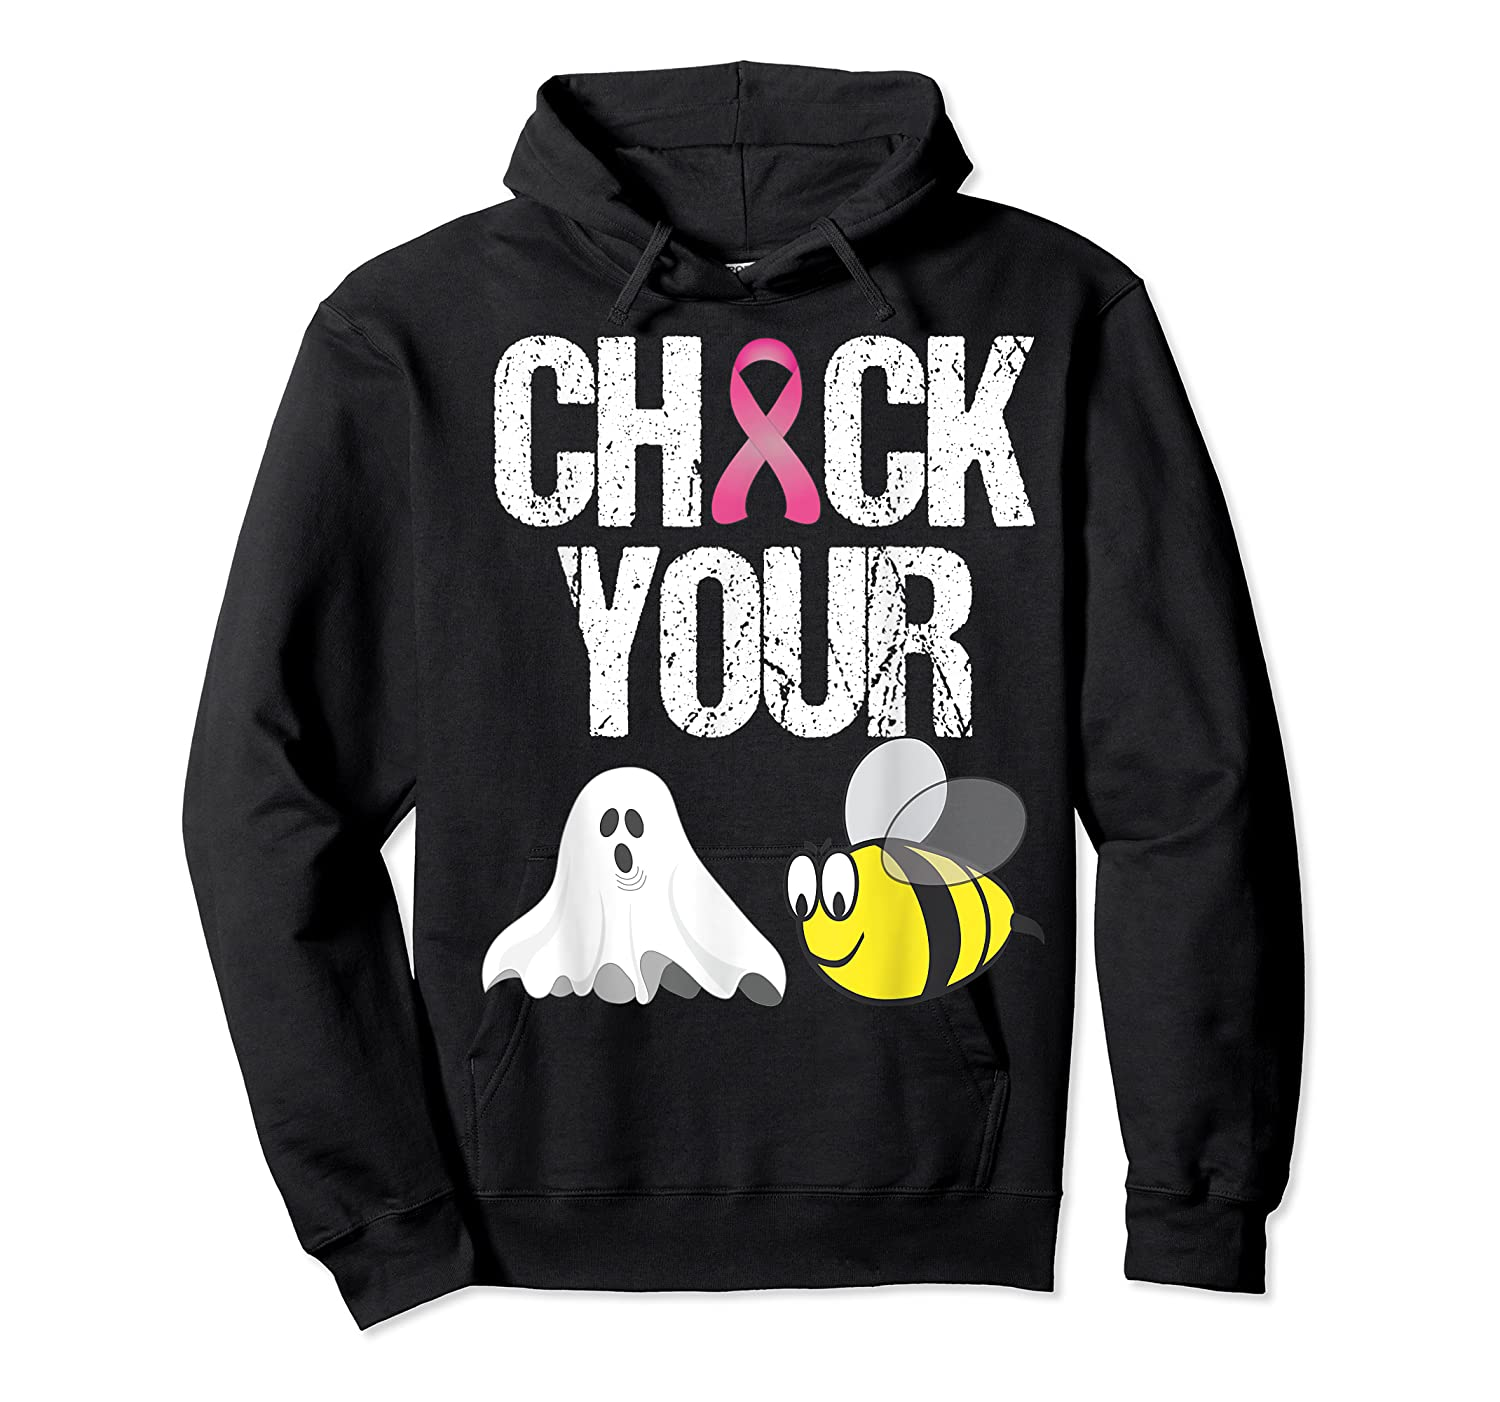 Check Your Boo Bees Shirt Funny Breast Cancer Halloween Gift Unisex Pullover Hoodie